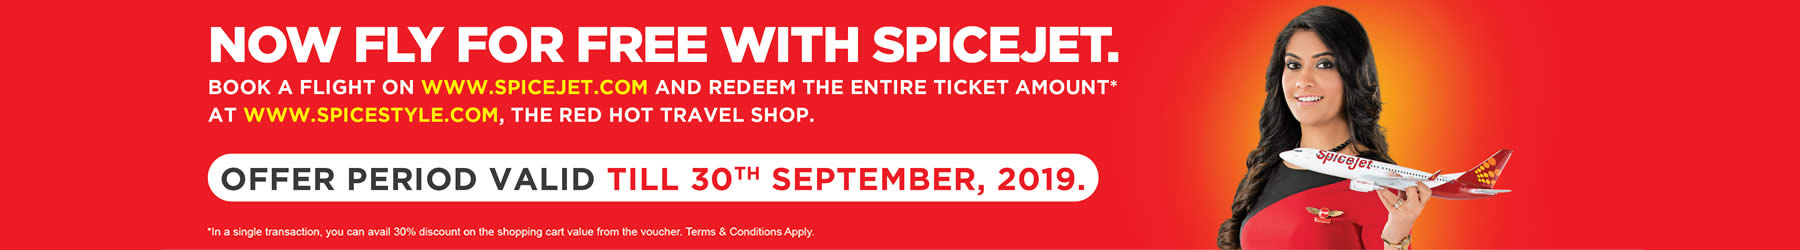 Spicejet SpiceStyle Fly For Free